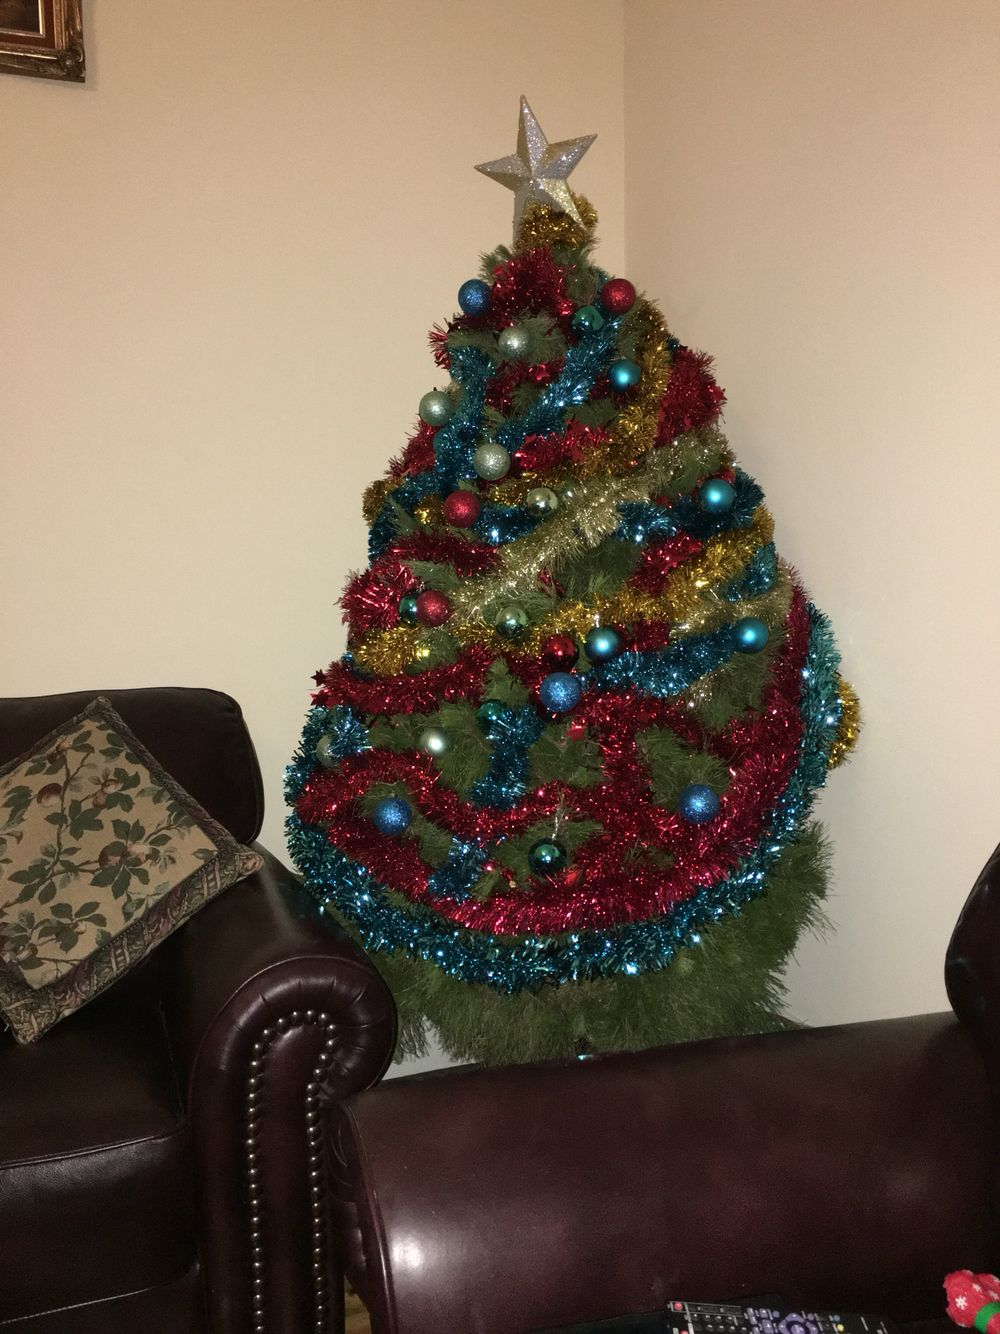 http://timethiefblog.wordpress.com  www.its-a-gem.net  #christmastree christmas #palace  #home decor #home #homedecor #lifestyle  #lifestyle #queen #royal #royalty #luxury #vase